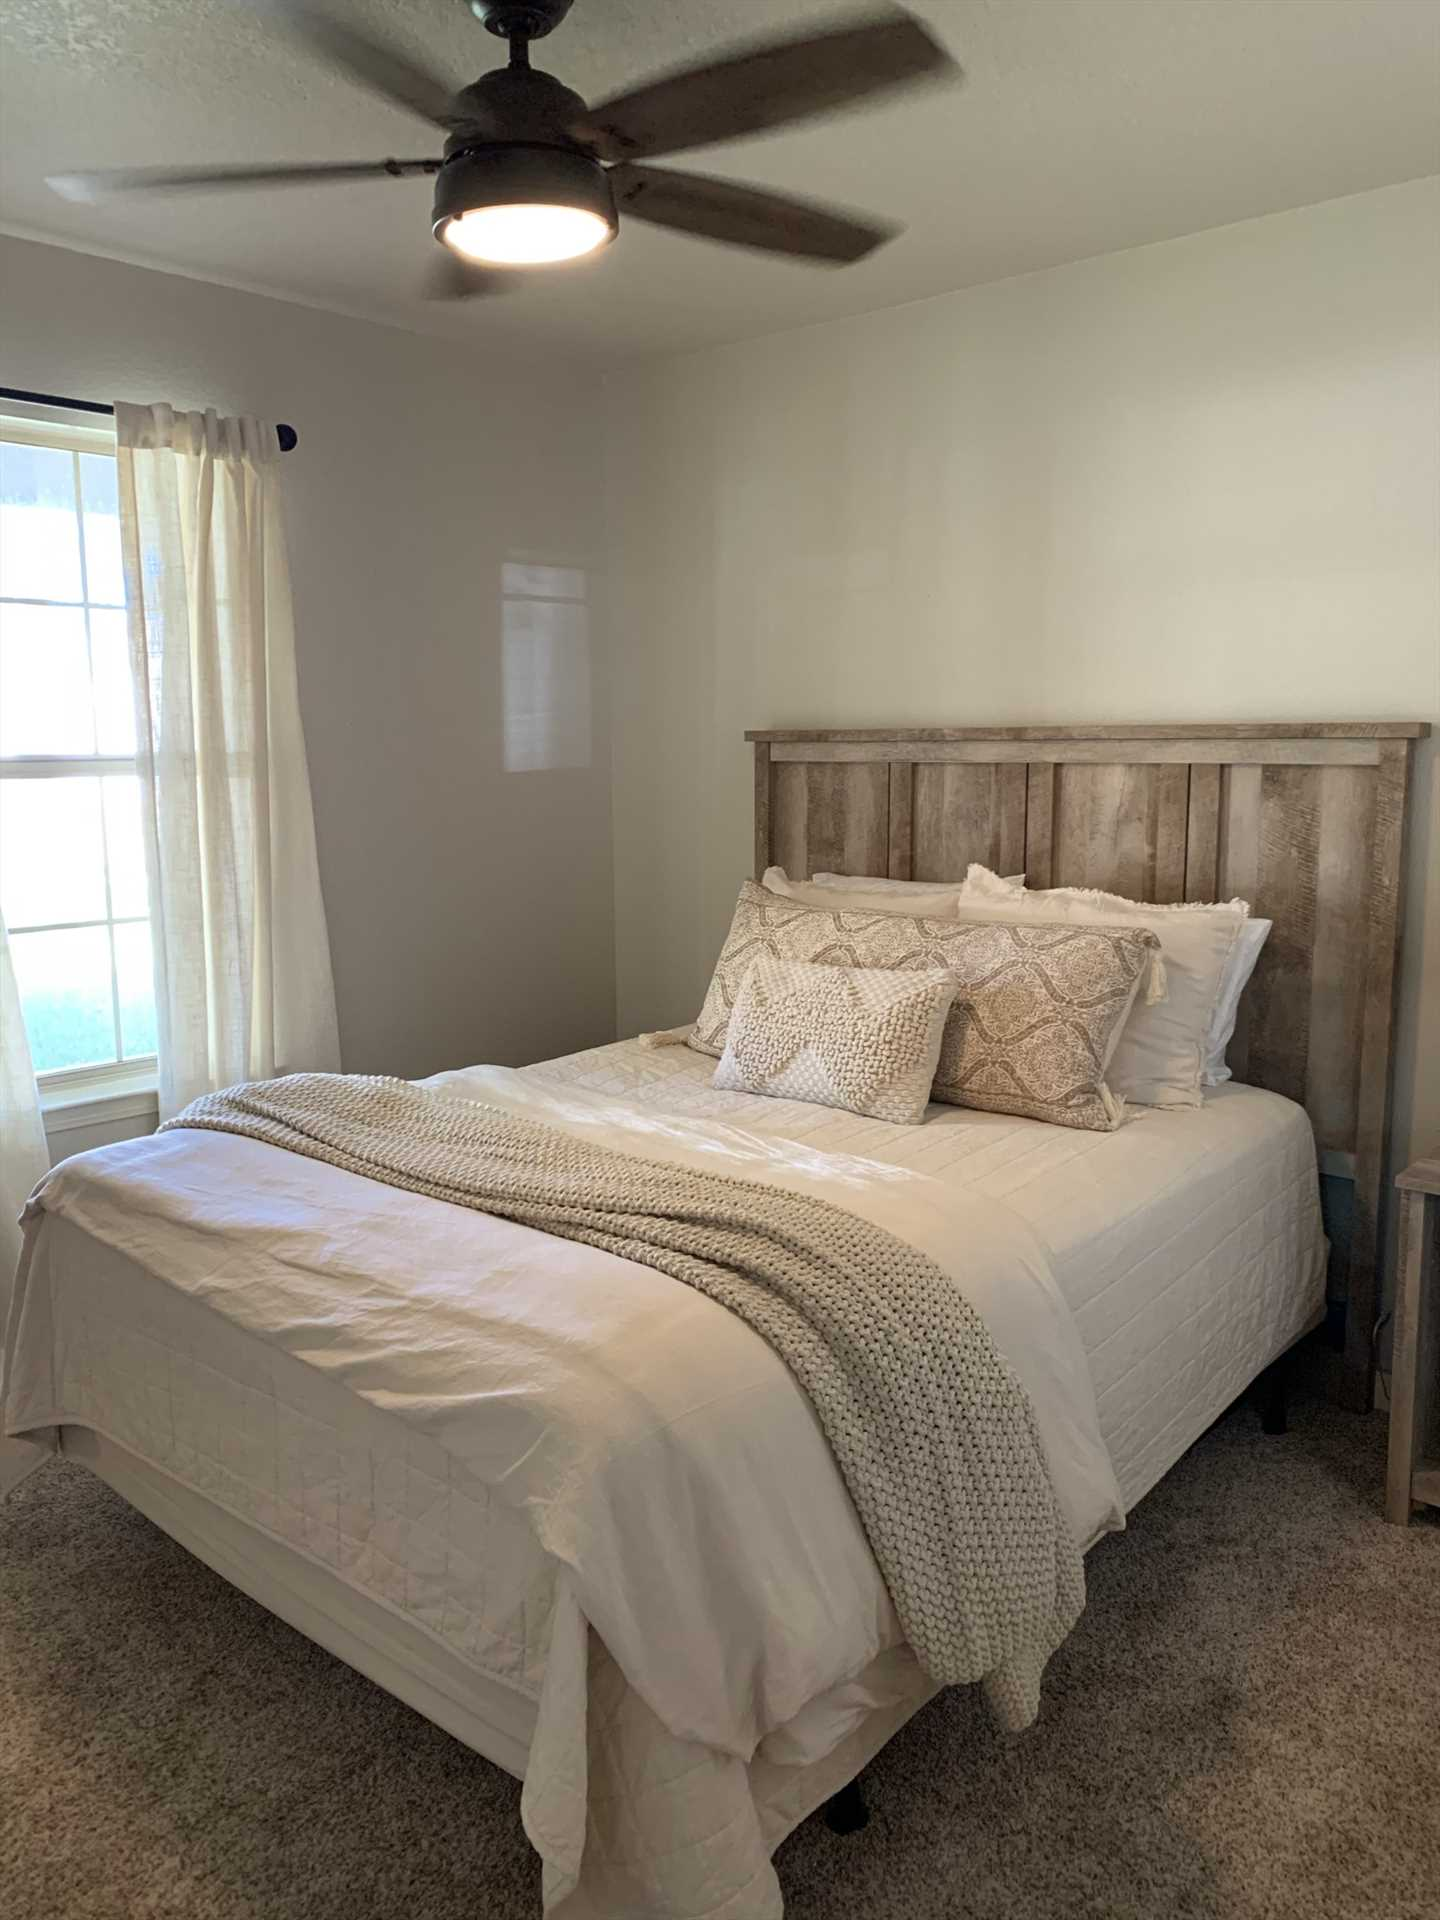 A clean and stylish queen-sized bed graces the second bedroom, and all three bedrooms here are appointed with fresh and soft bed linens.